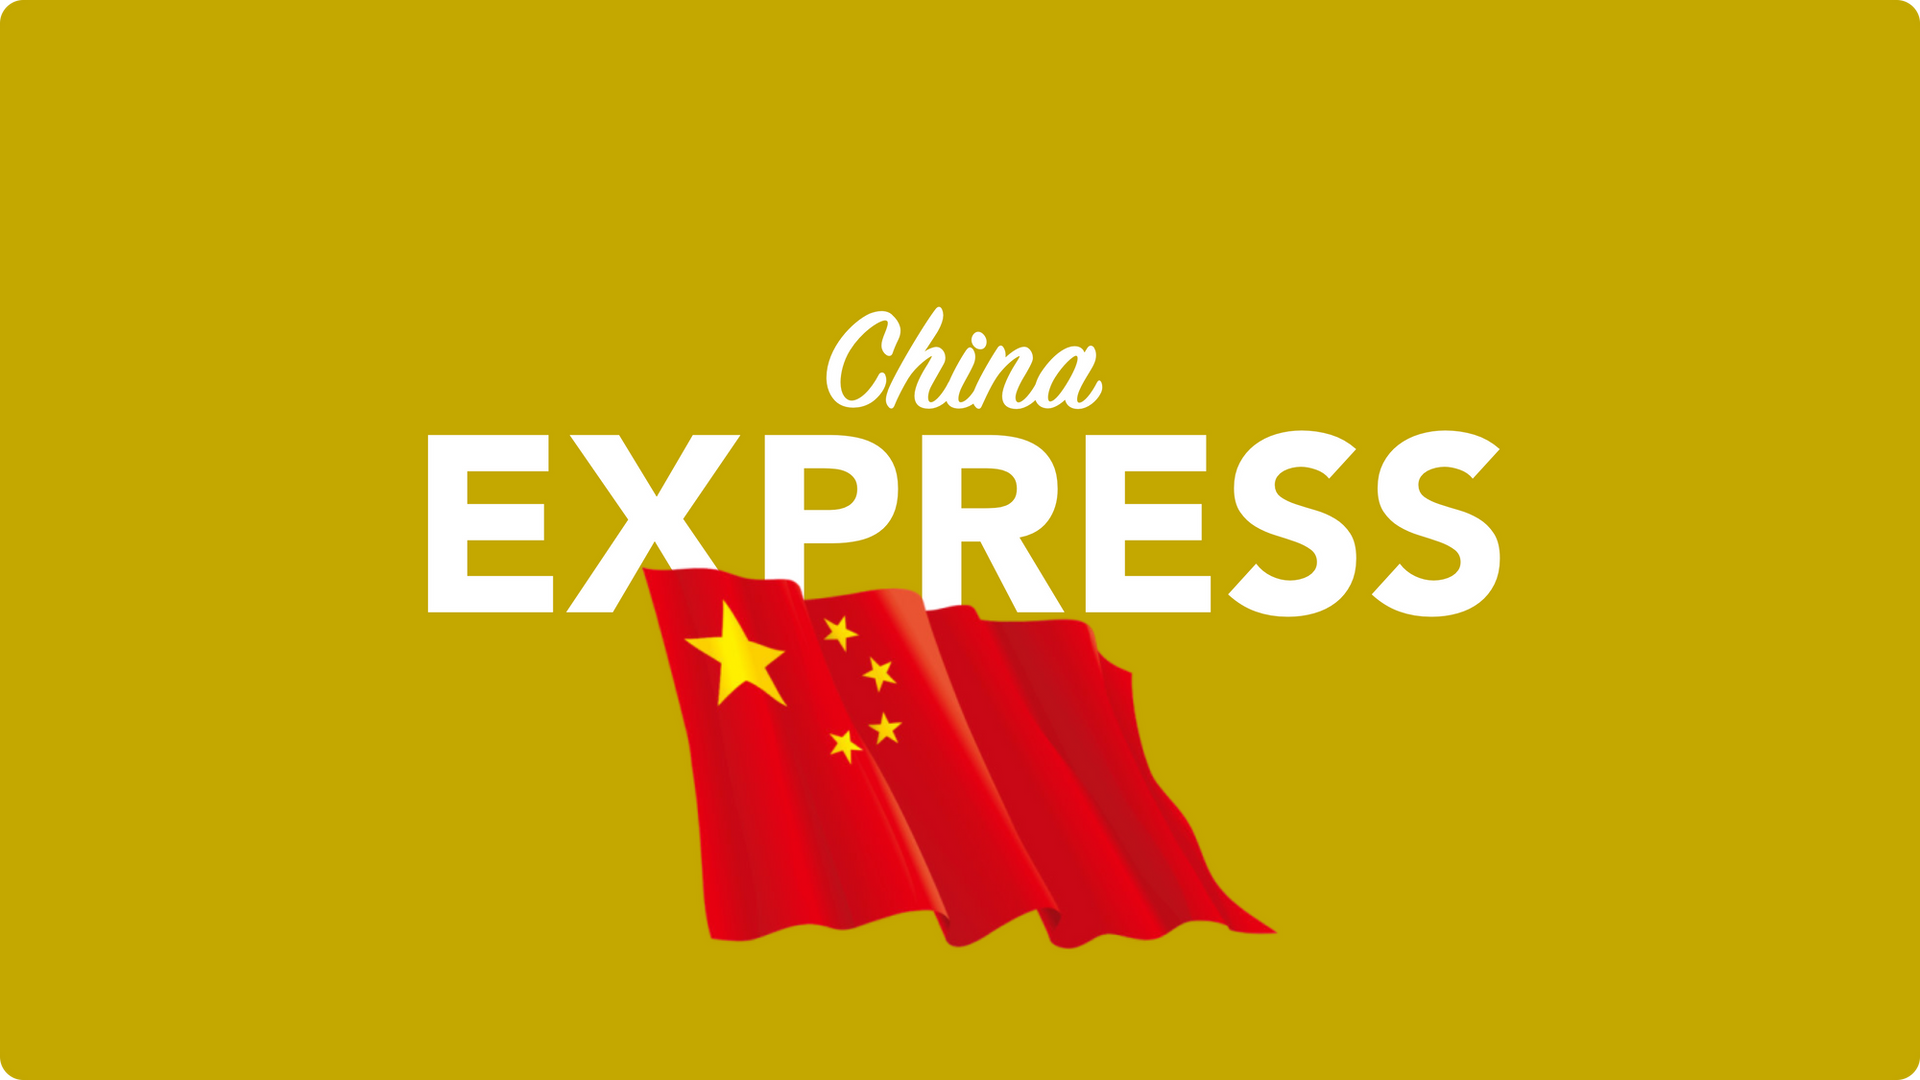 Per Express nach China versenden